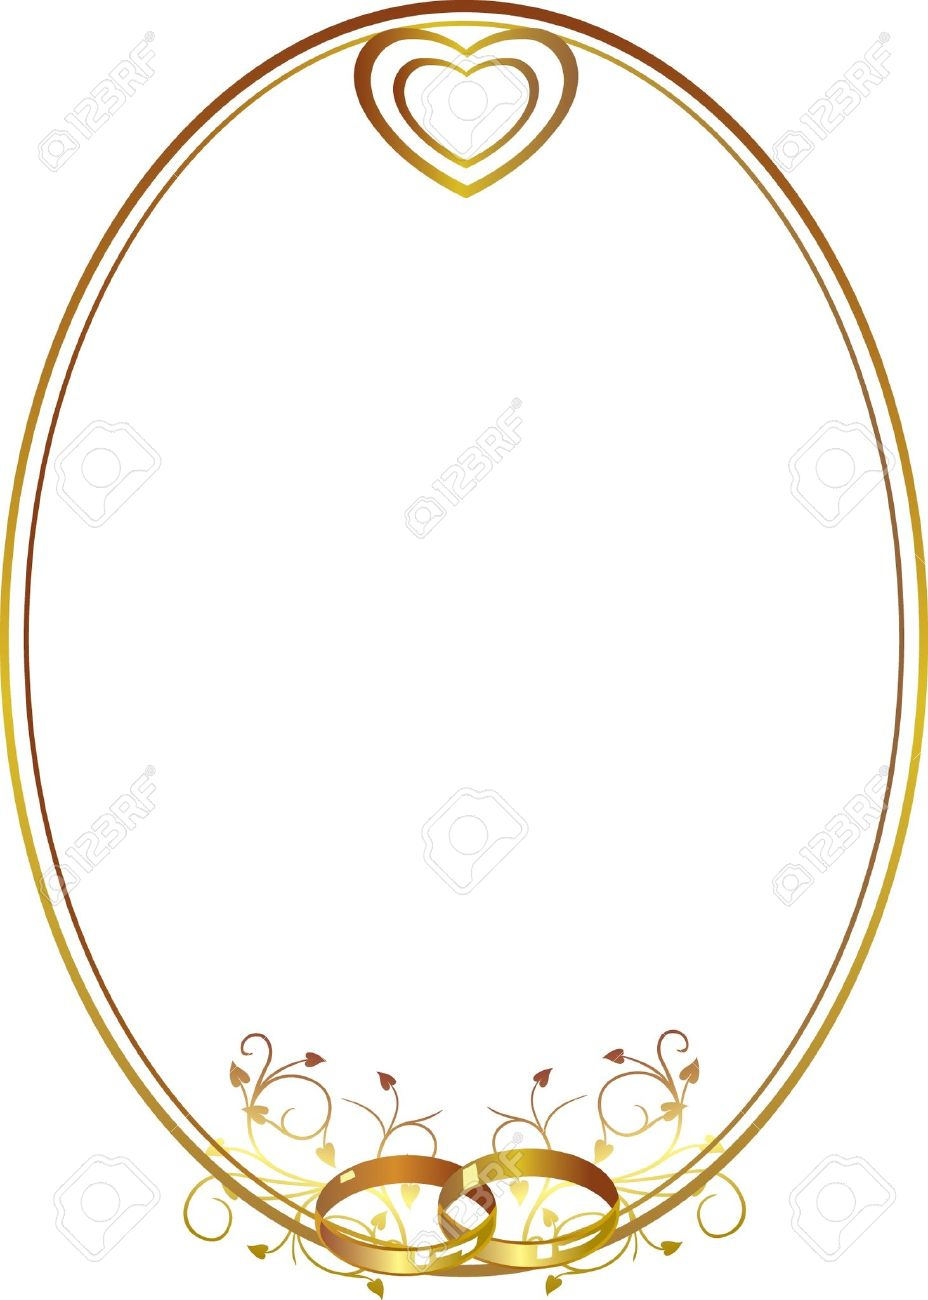 Wedding ring border clipart 7 » Clipart Station.